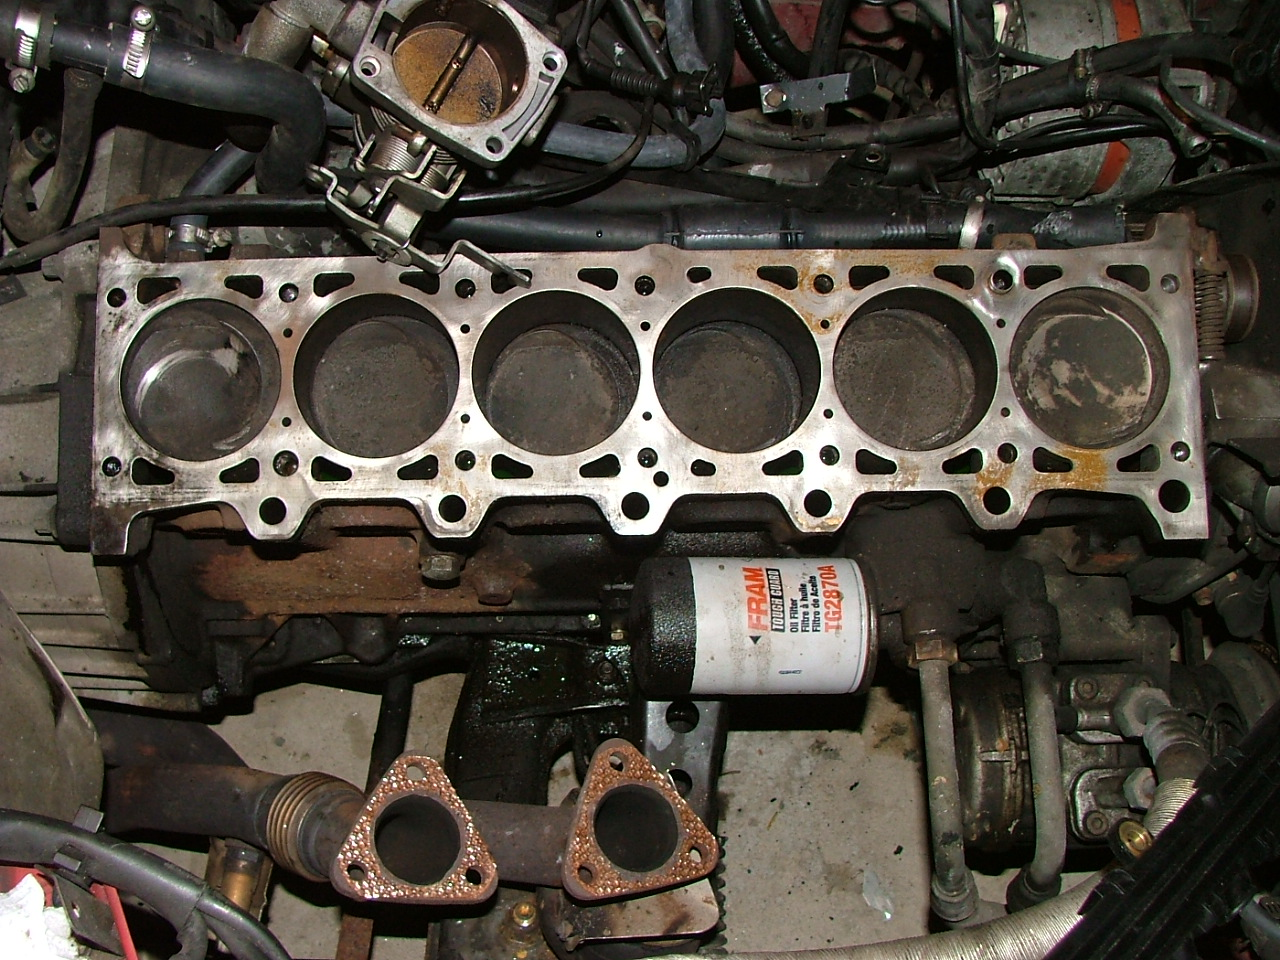 hight resolution of a bmw m20b25 engine with the cylinder head removed showing the pistons in the six